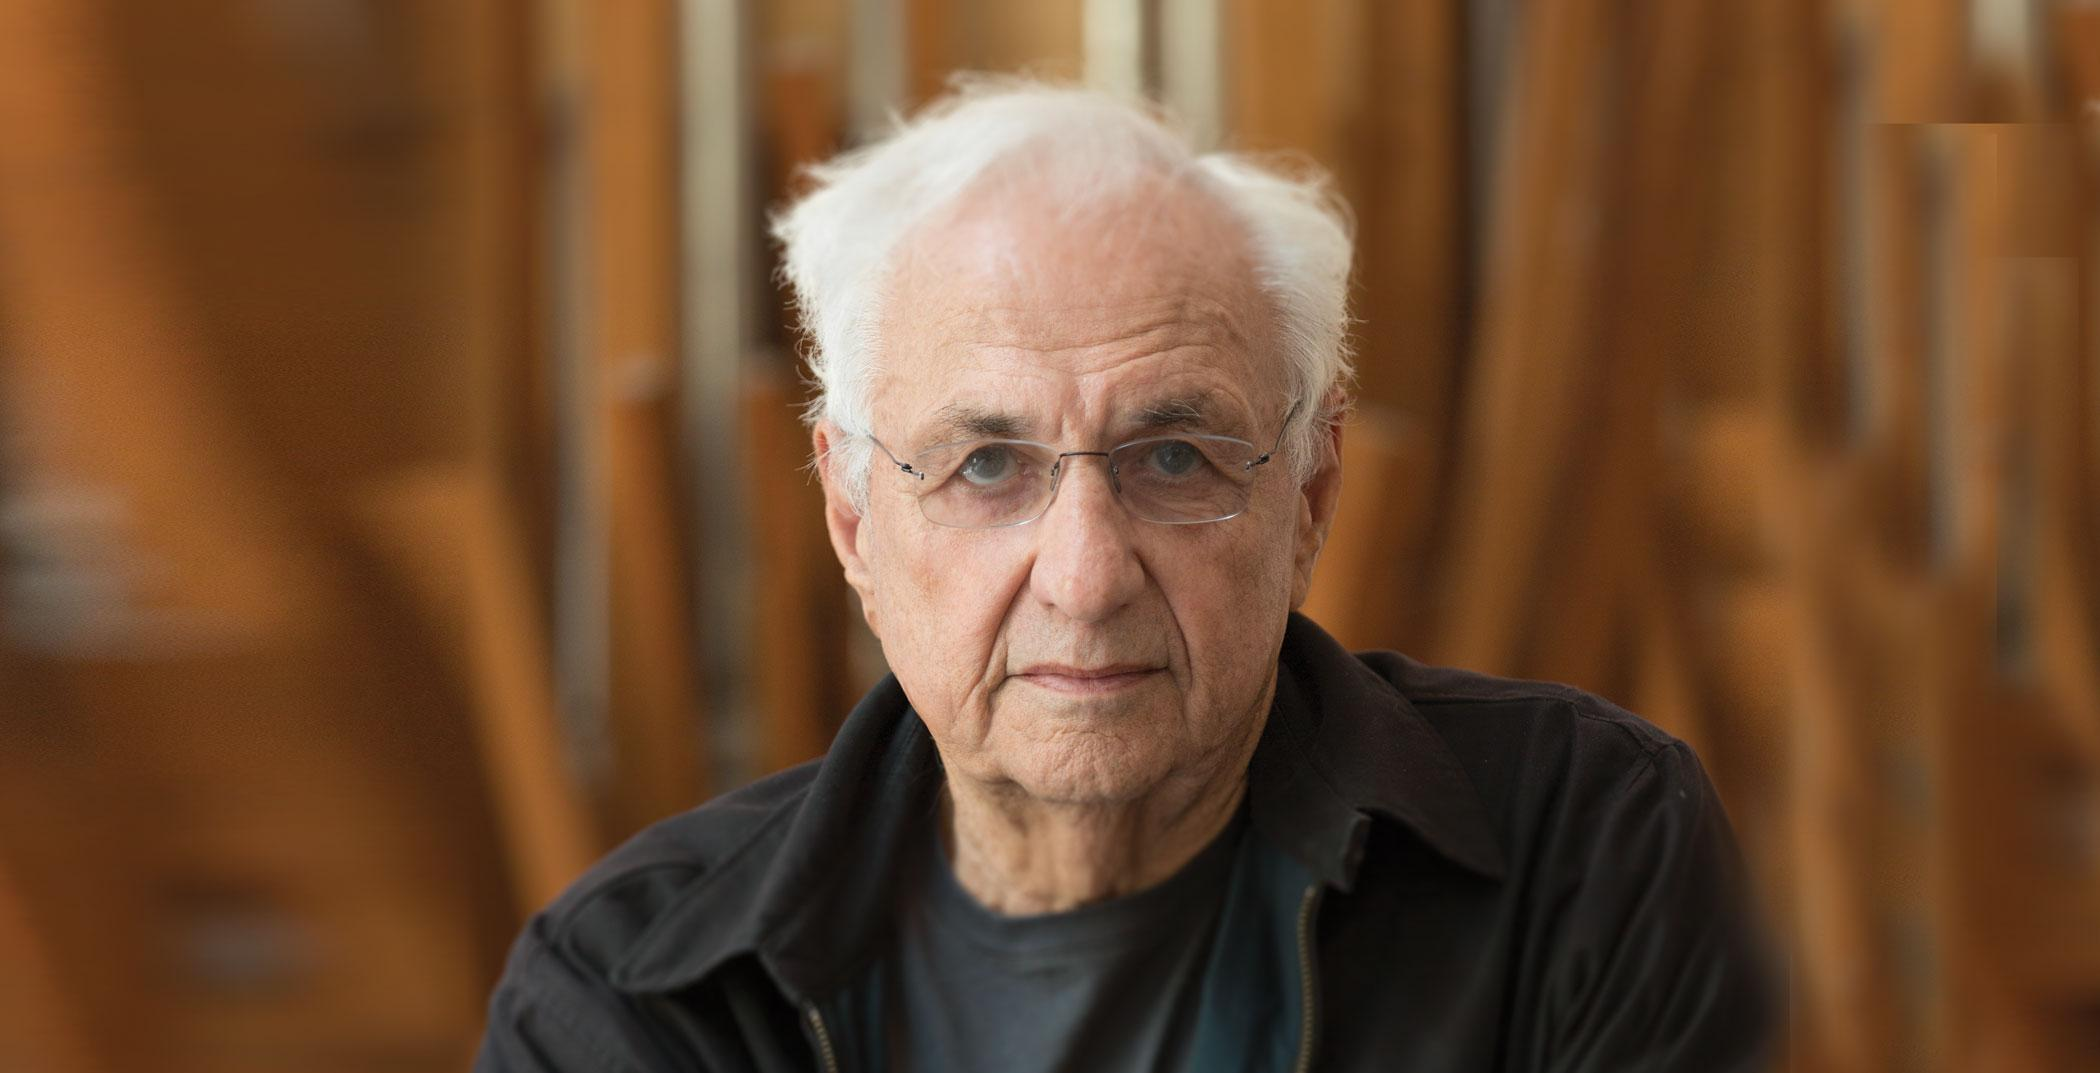 Frank Gehry, architect Photo: Chad Slattery